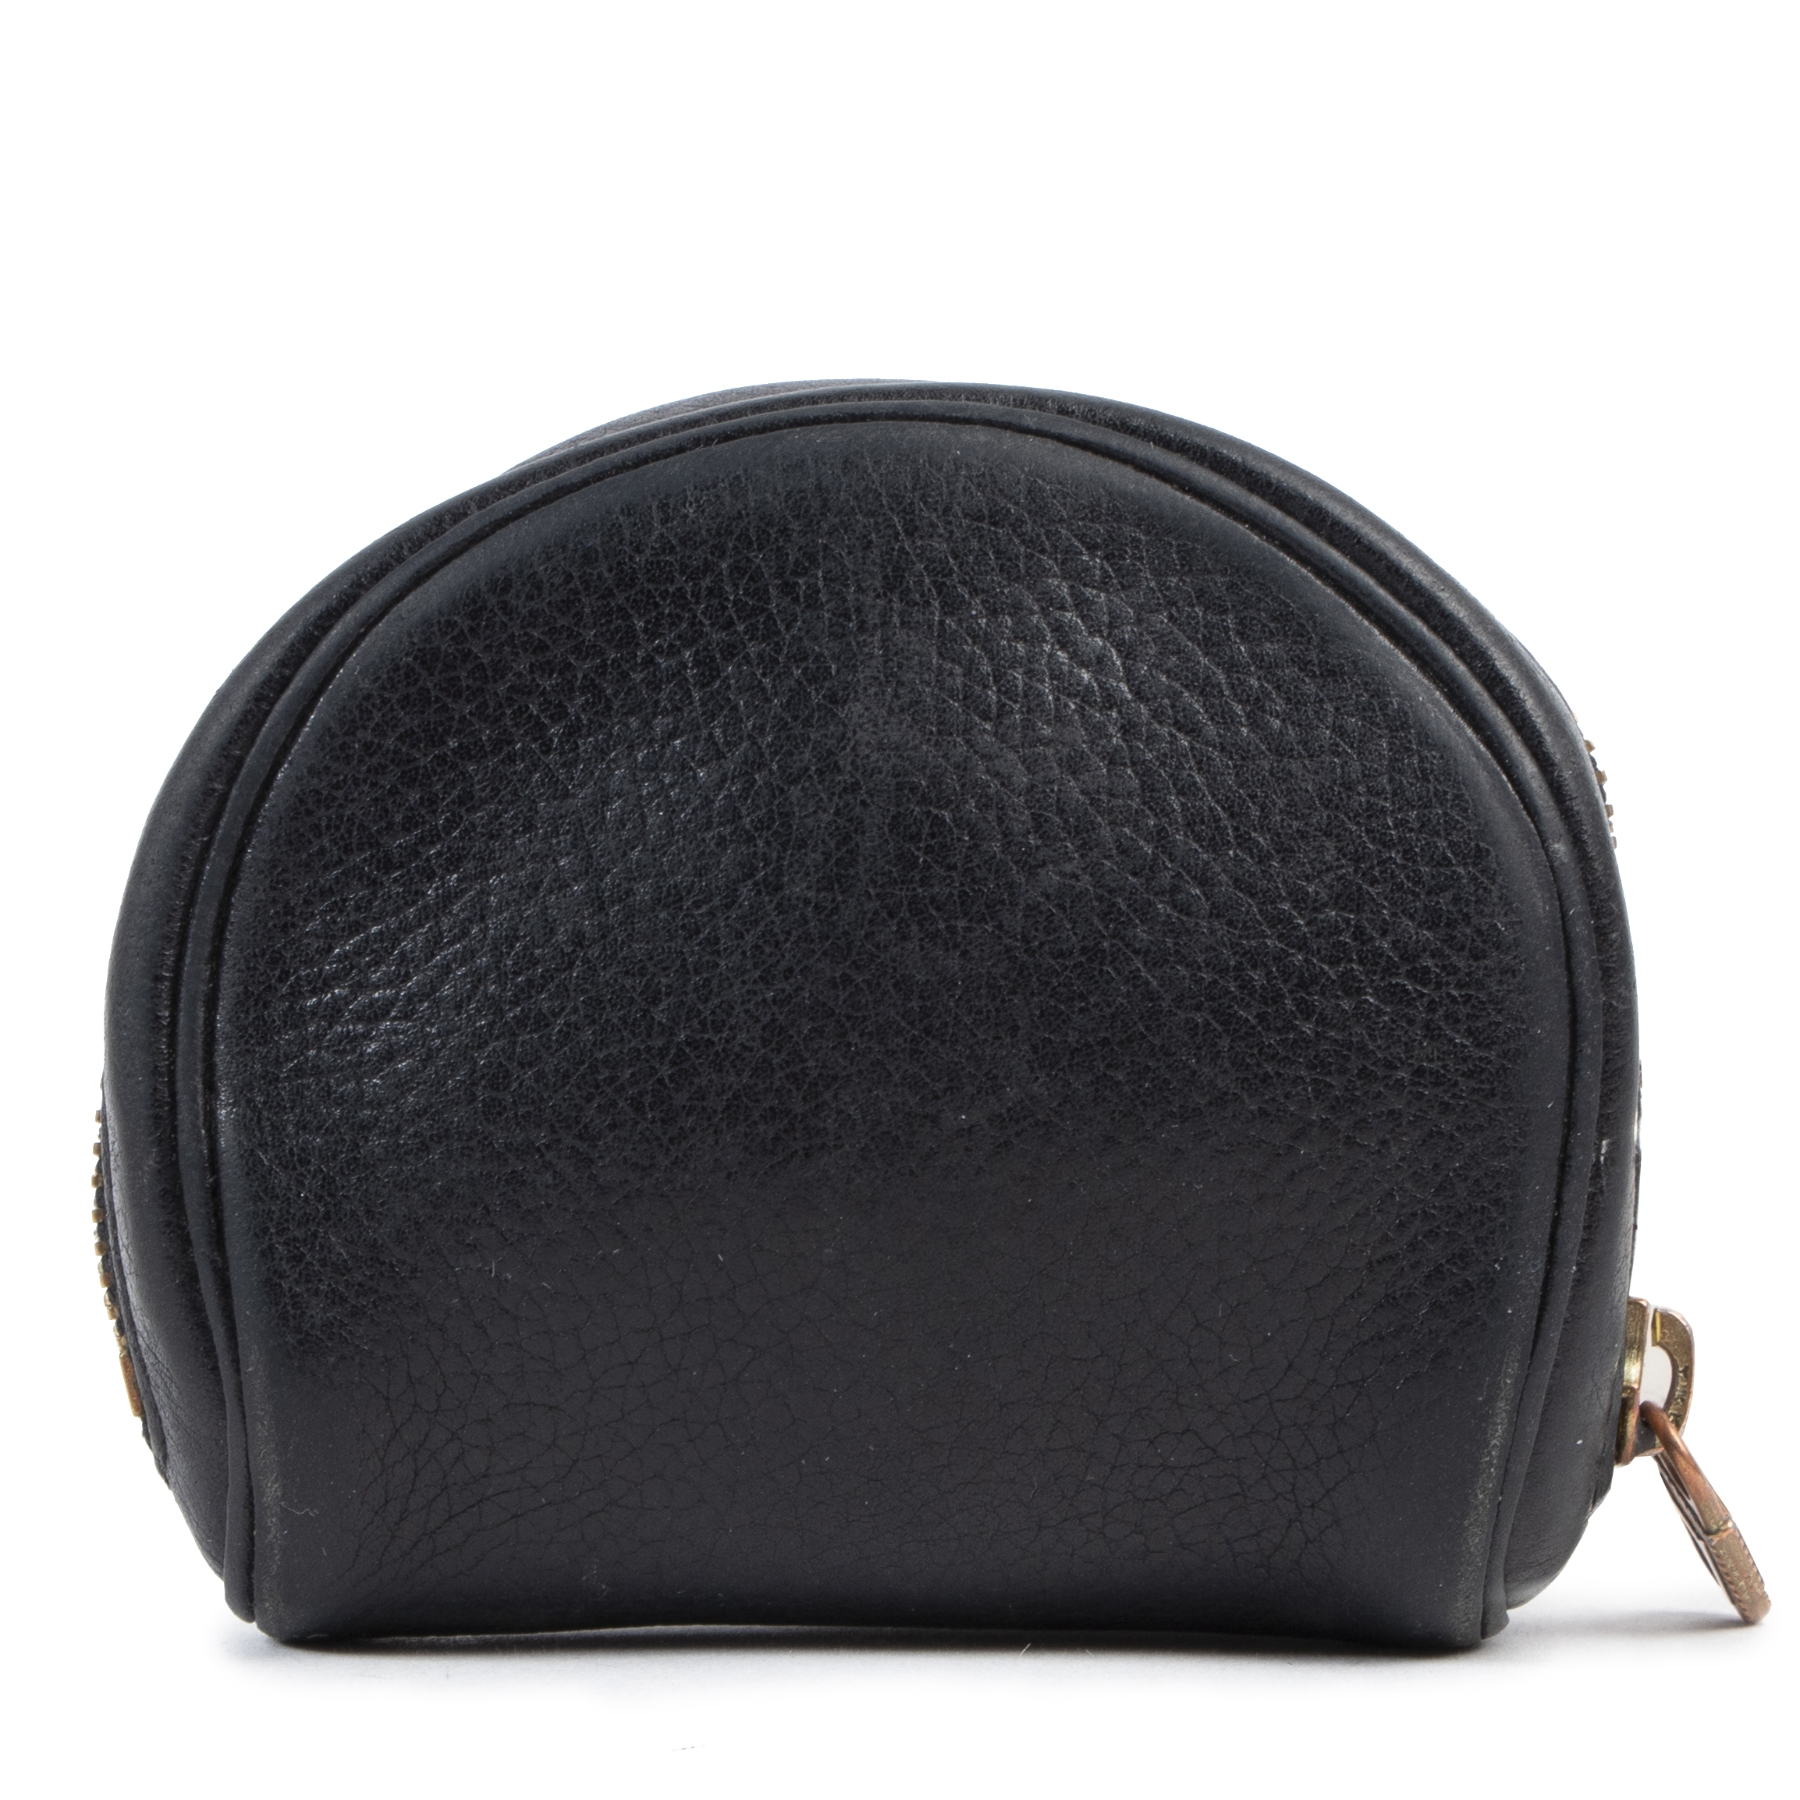 Delvaux Black Leather Coin Purse